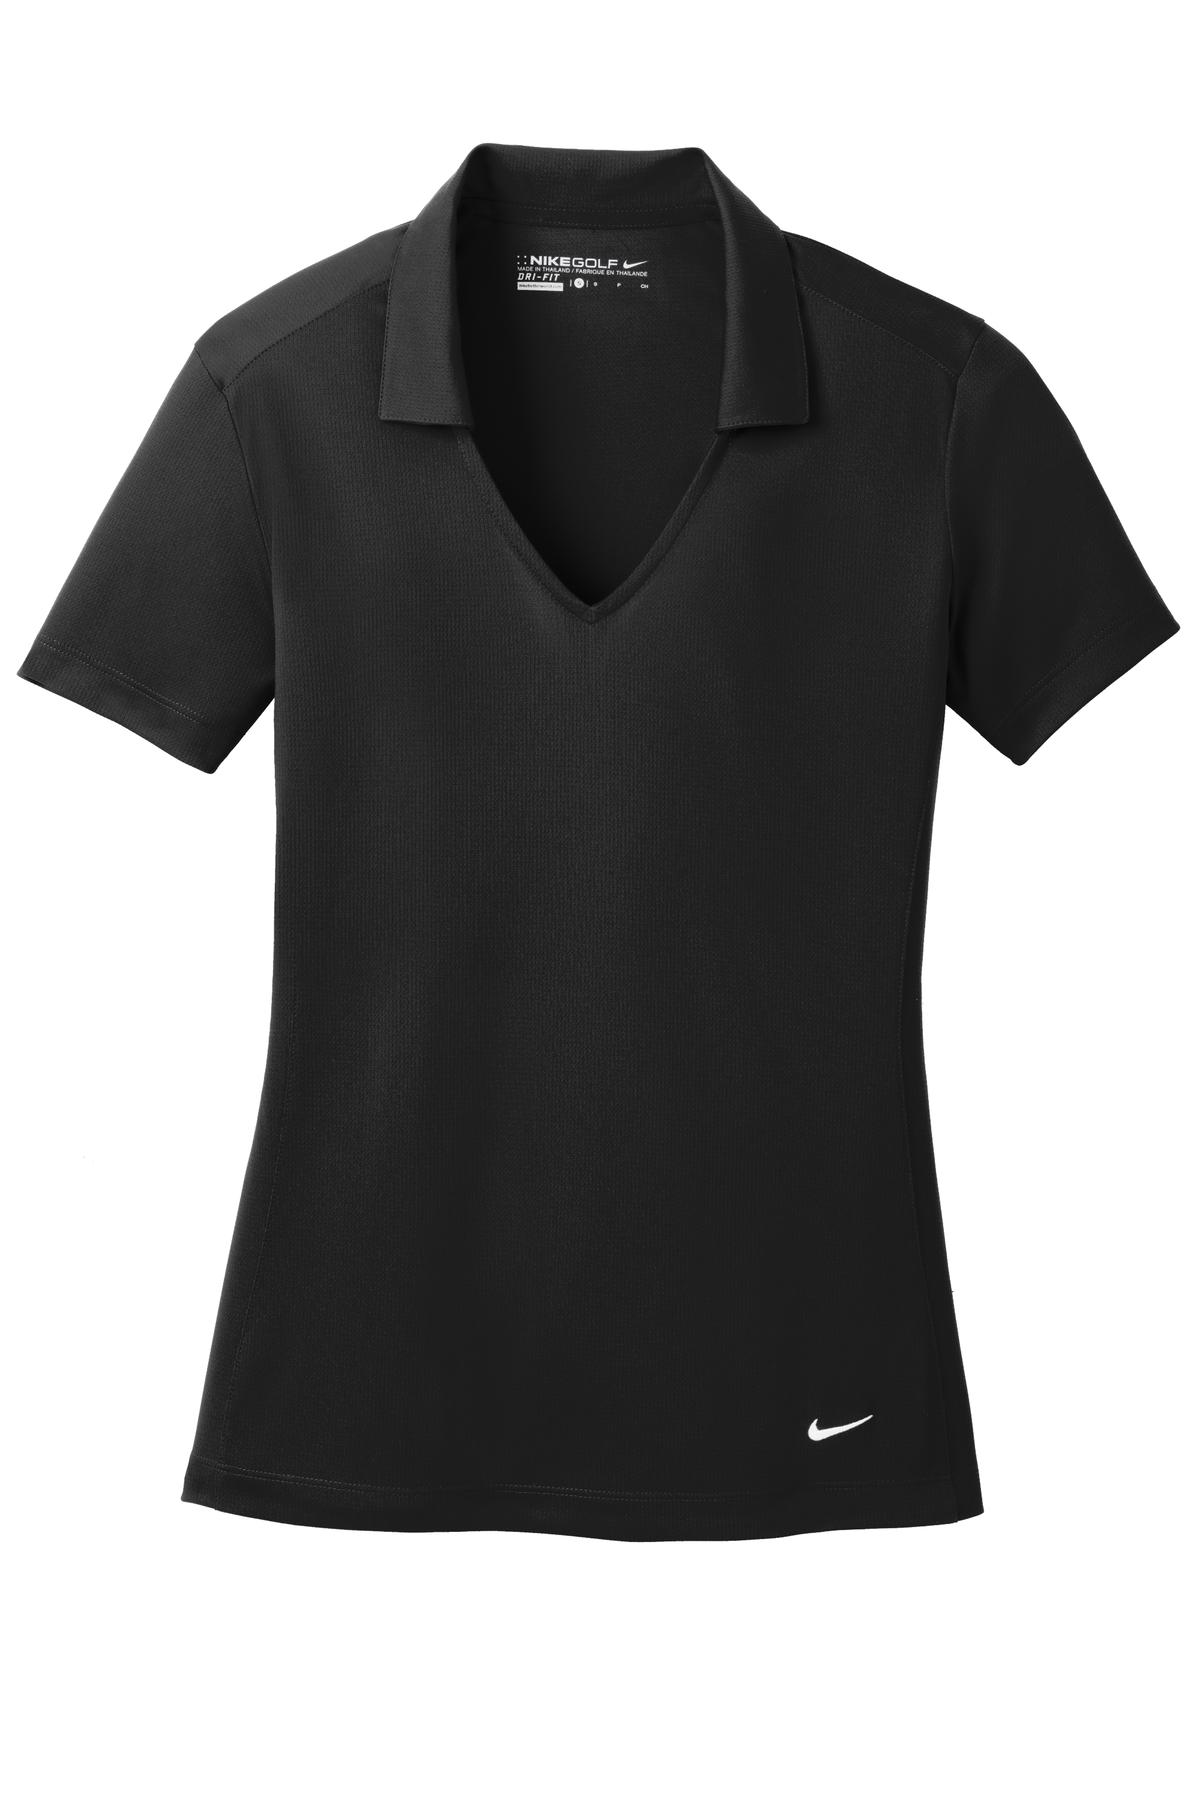 Black Nike Ladies Dri-FIT Vertical Mesh Polo.